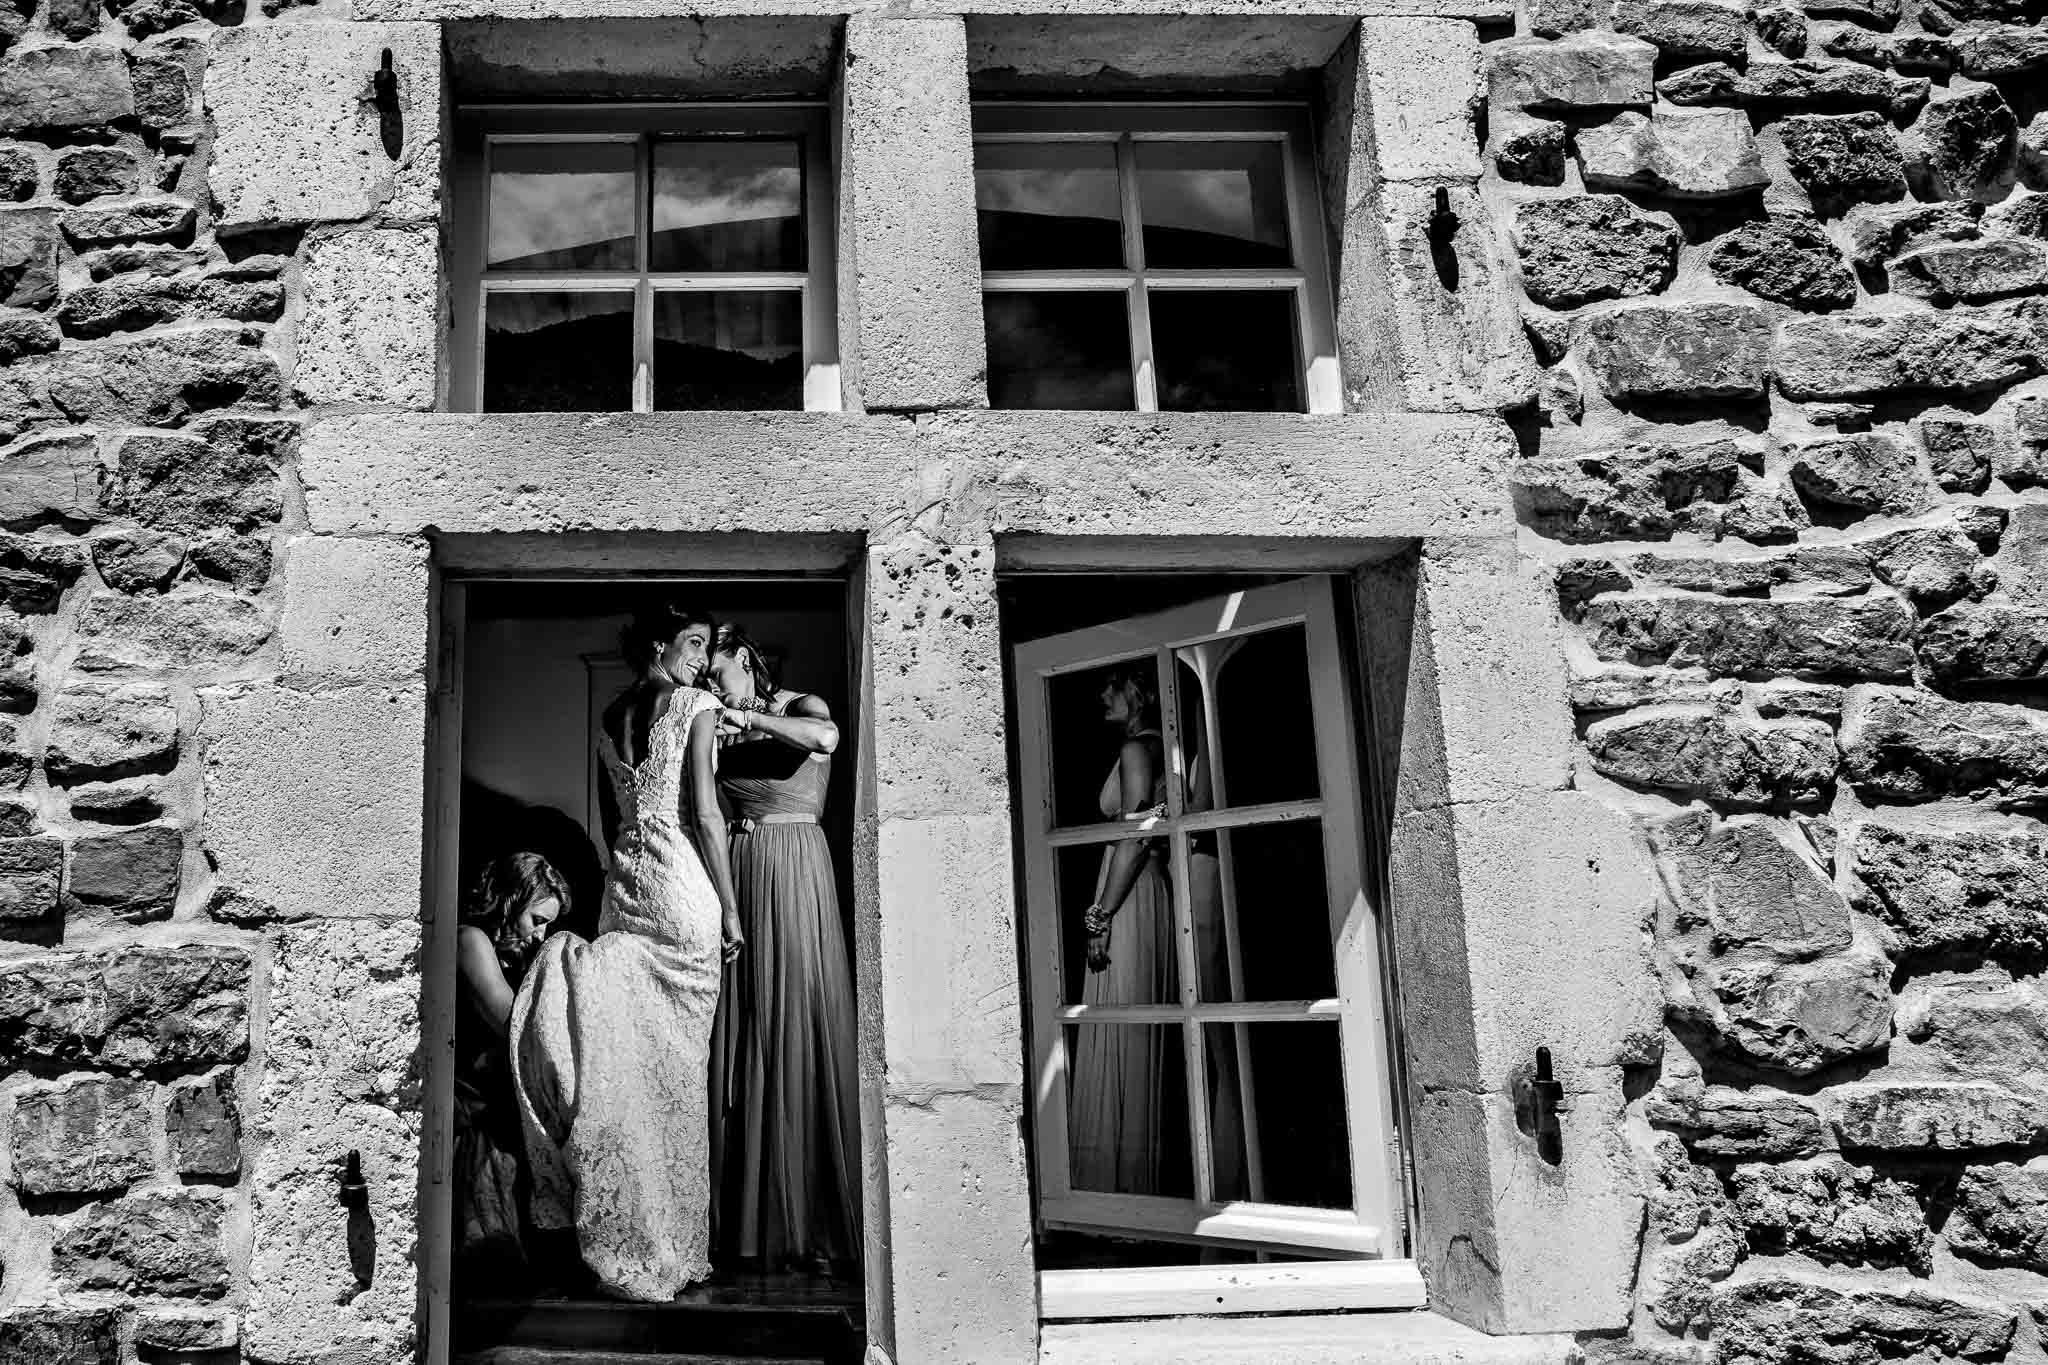 Bride getting dress on through window in Cirque de Navacelles outside Montpellier France